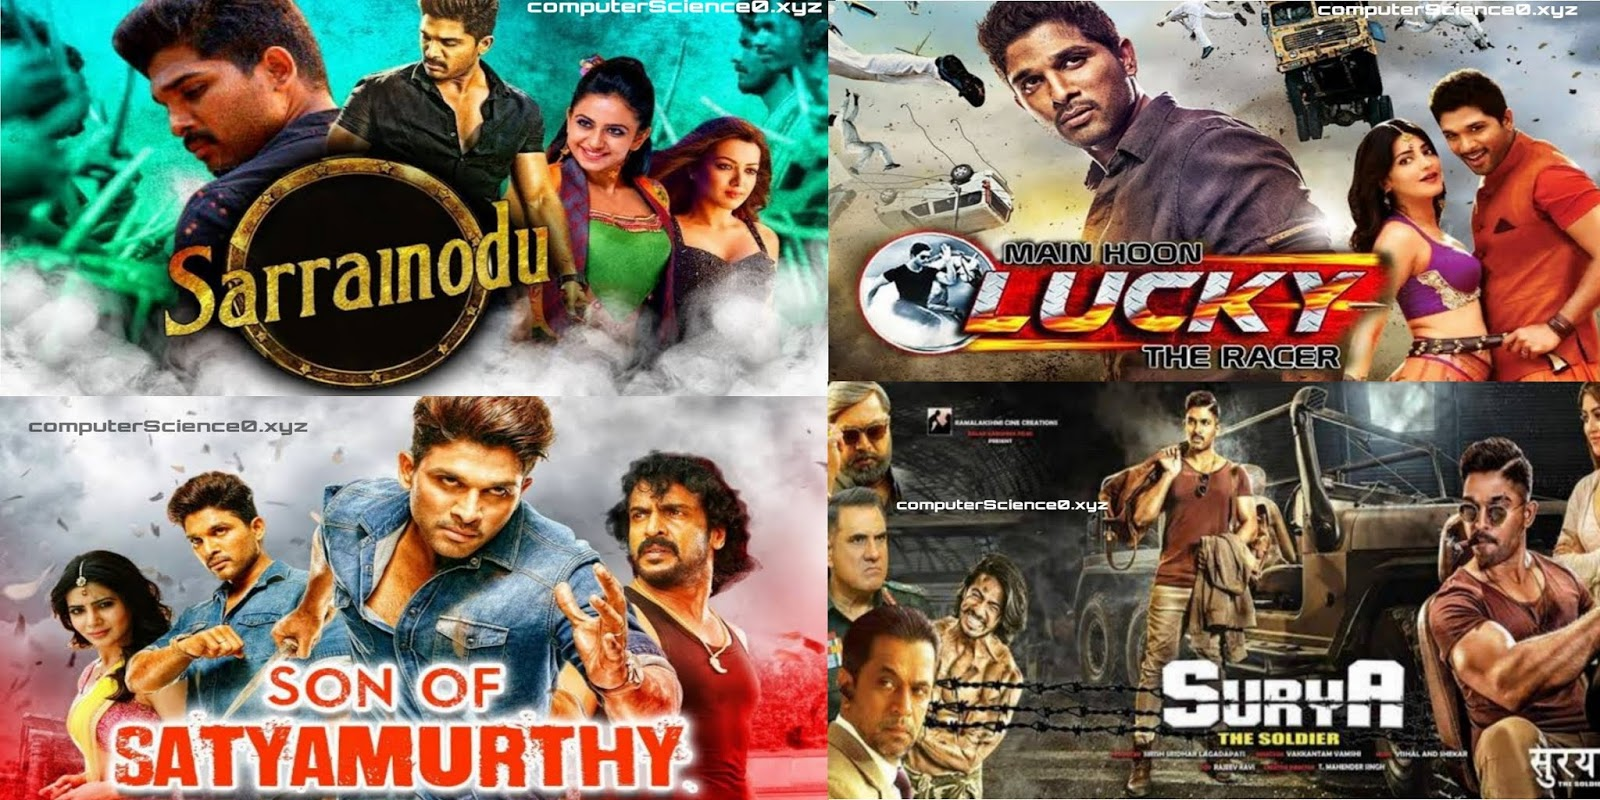 Watch Allu Arjun's Top 19 Movies of all time during this Lockdown and stay at home